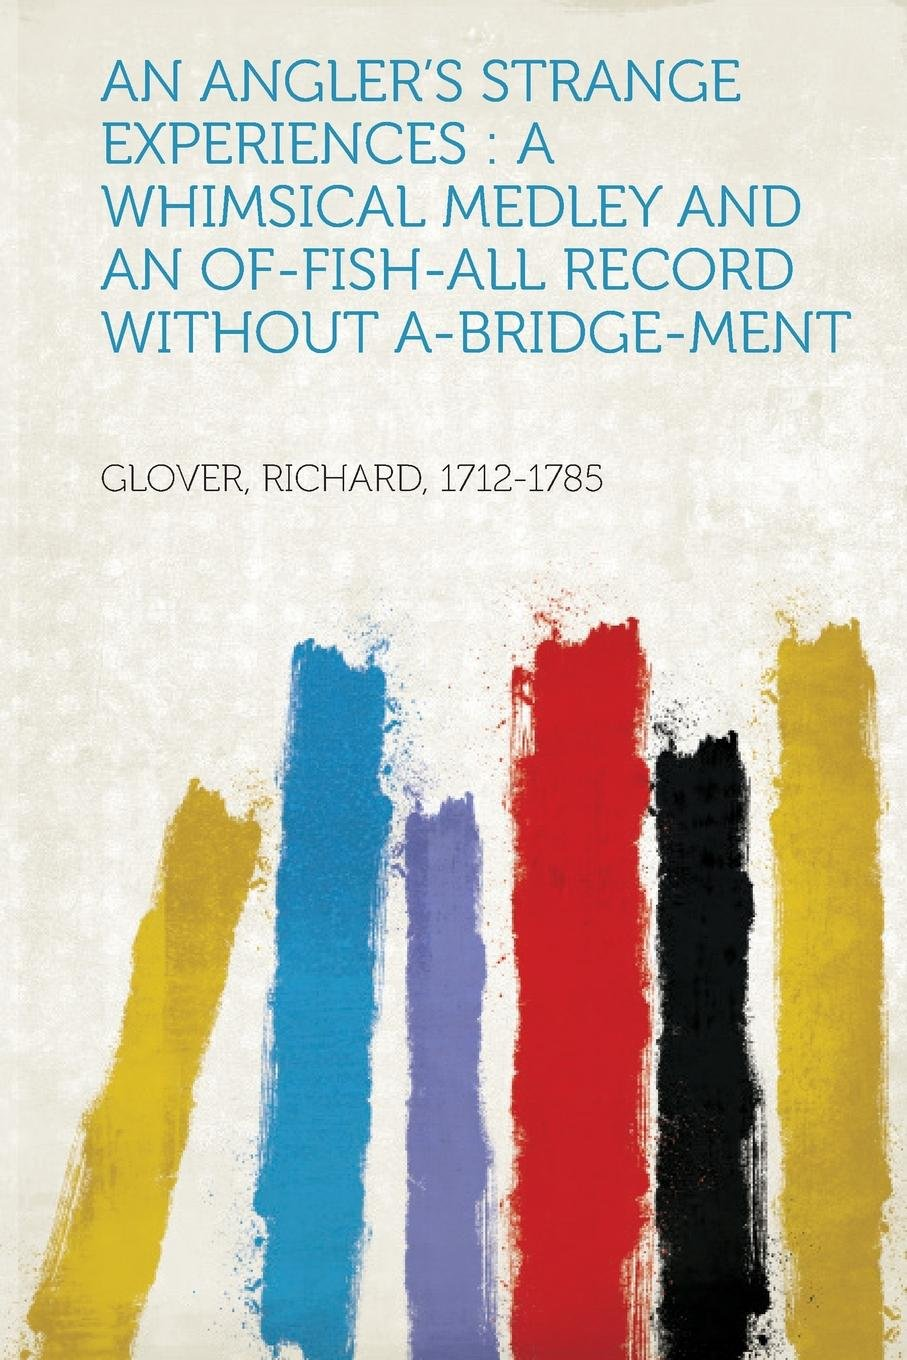 Read Online An Angler's Strange Experiences: A Whimsical Medley and an Of-Fish-All Record Without A-Bridge-Ment PDF